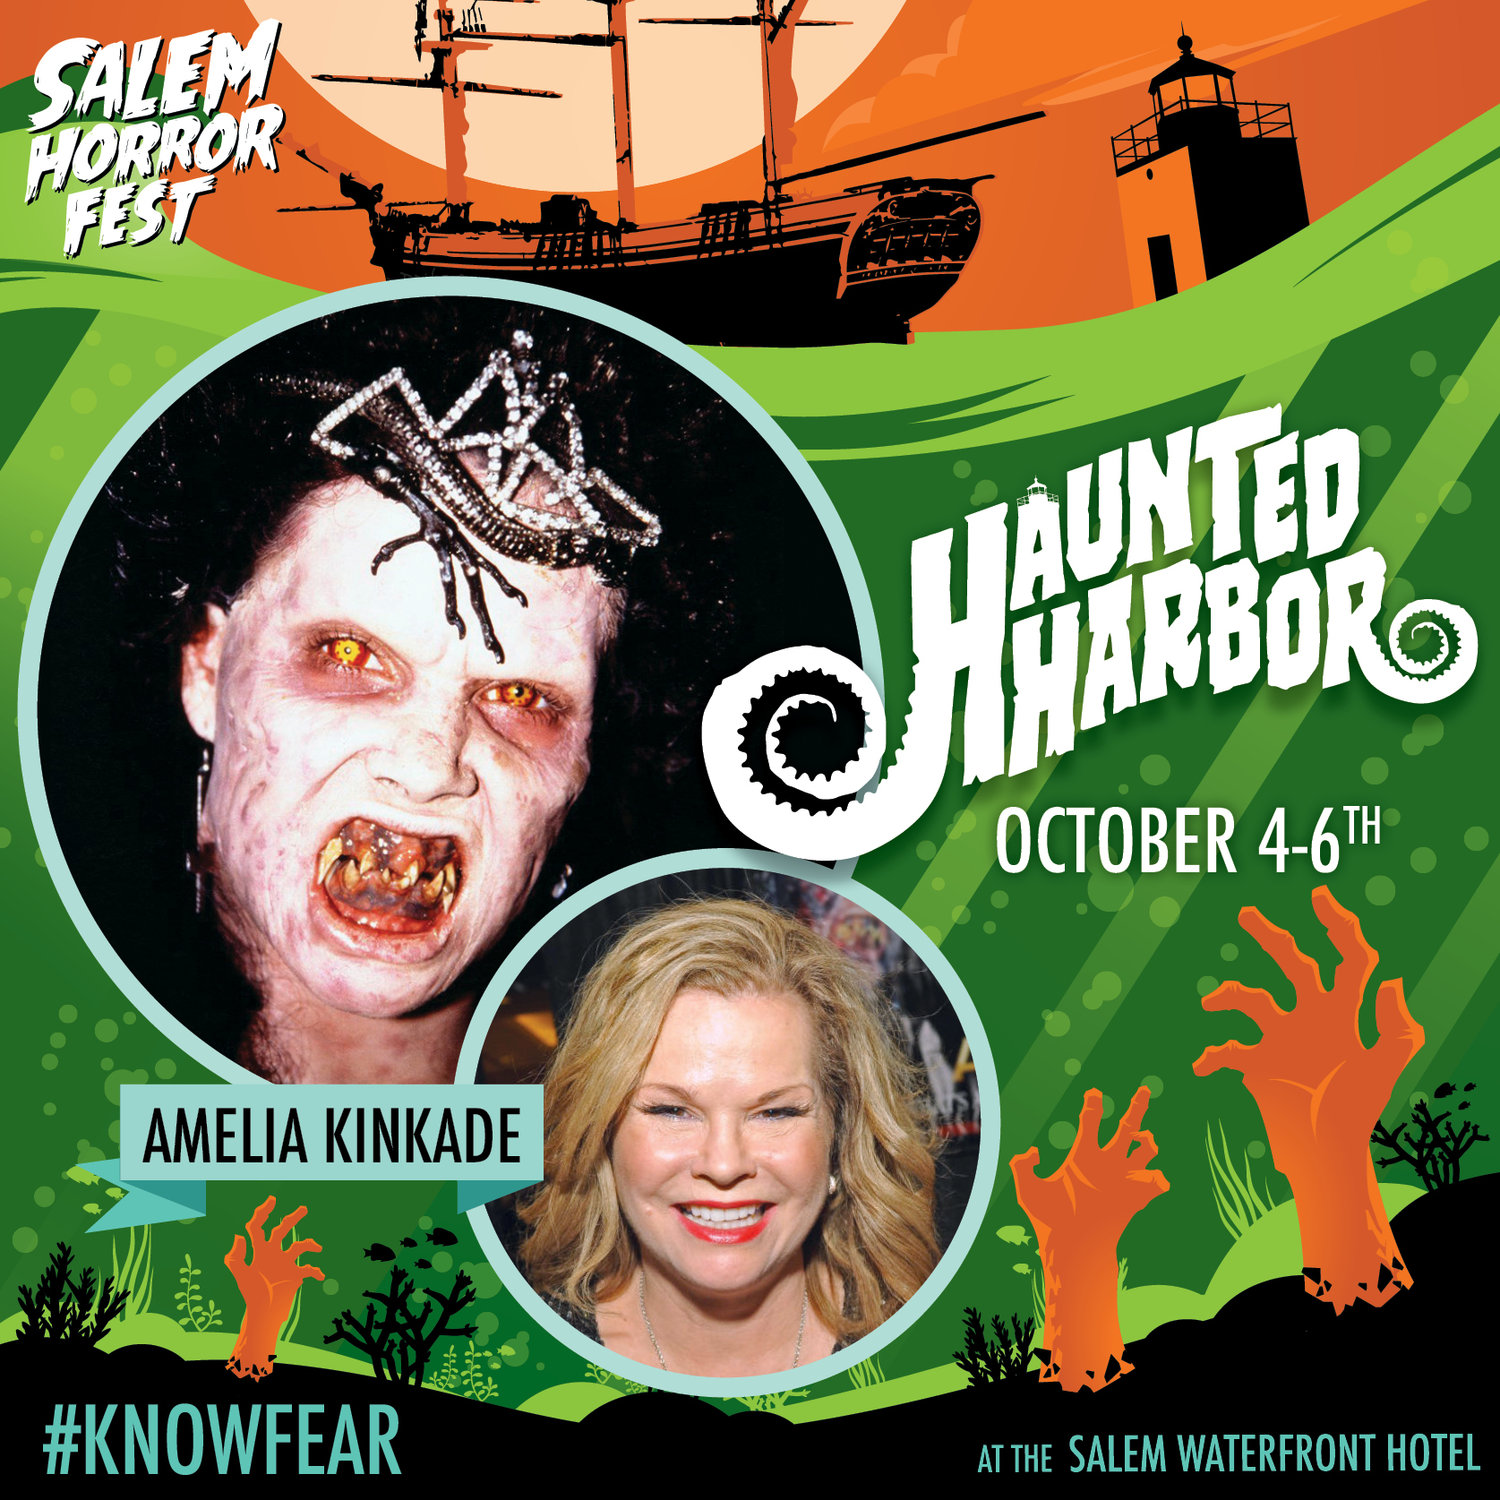 Amelia Kinkade Night Of The Demons meet amelia kinkade (night of the demons) — salem horror fest